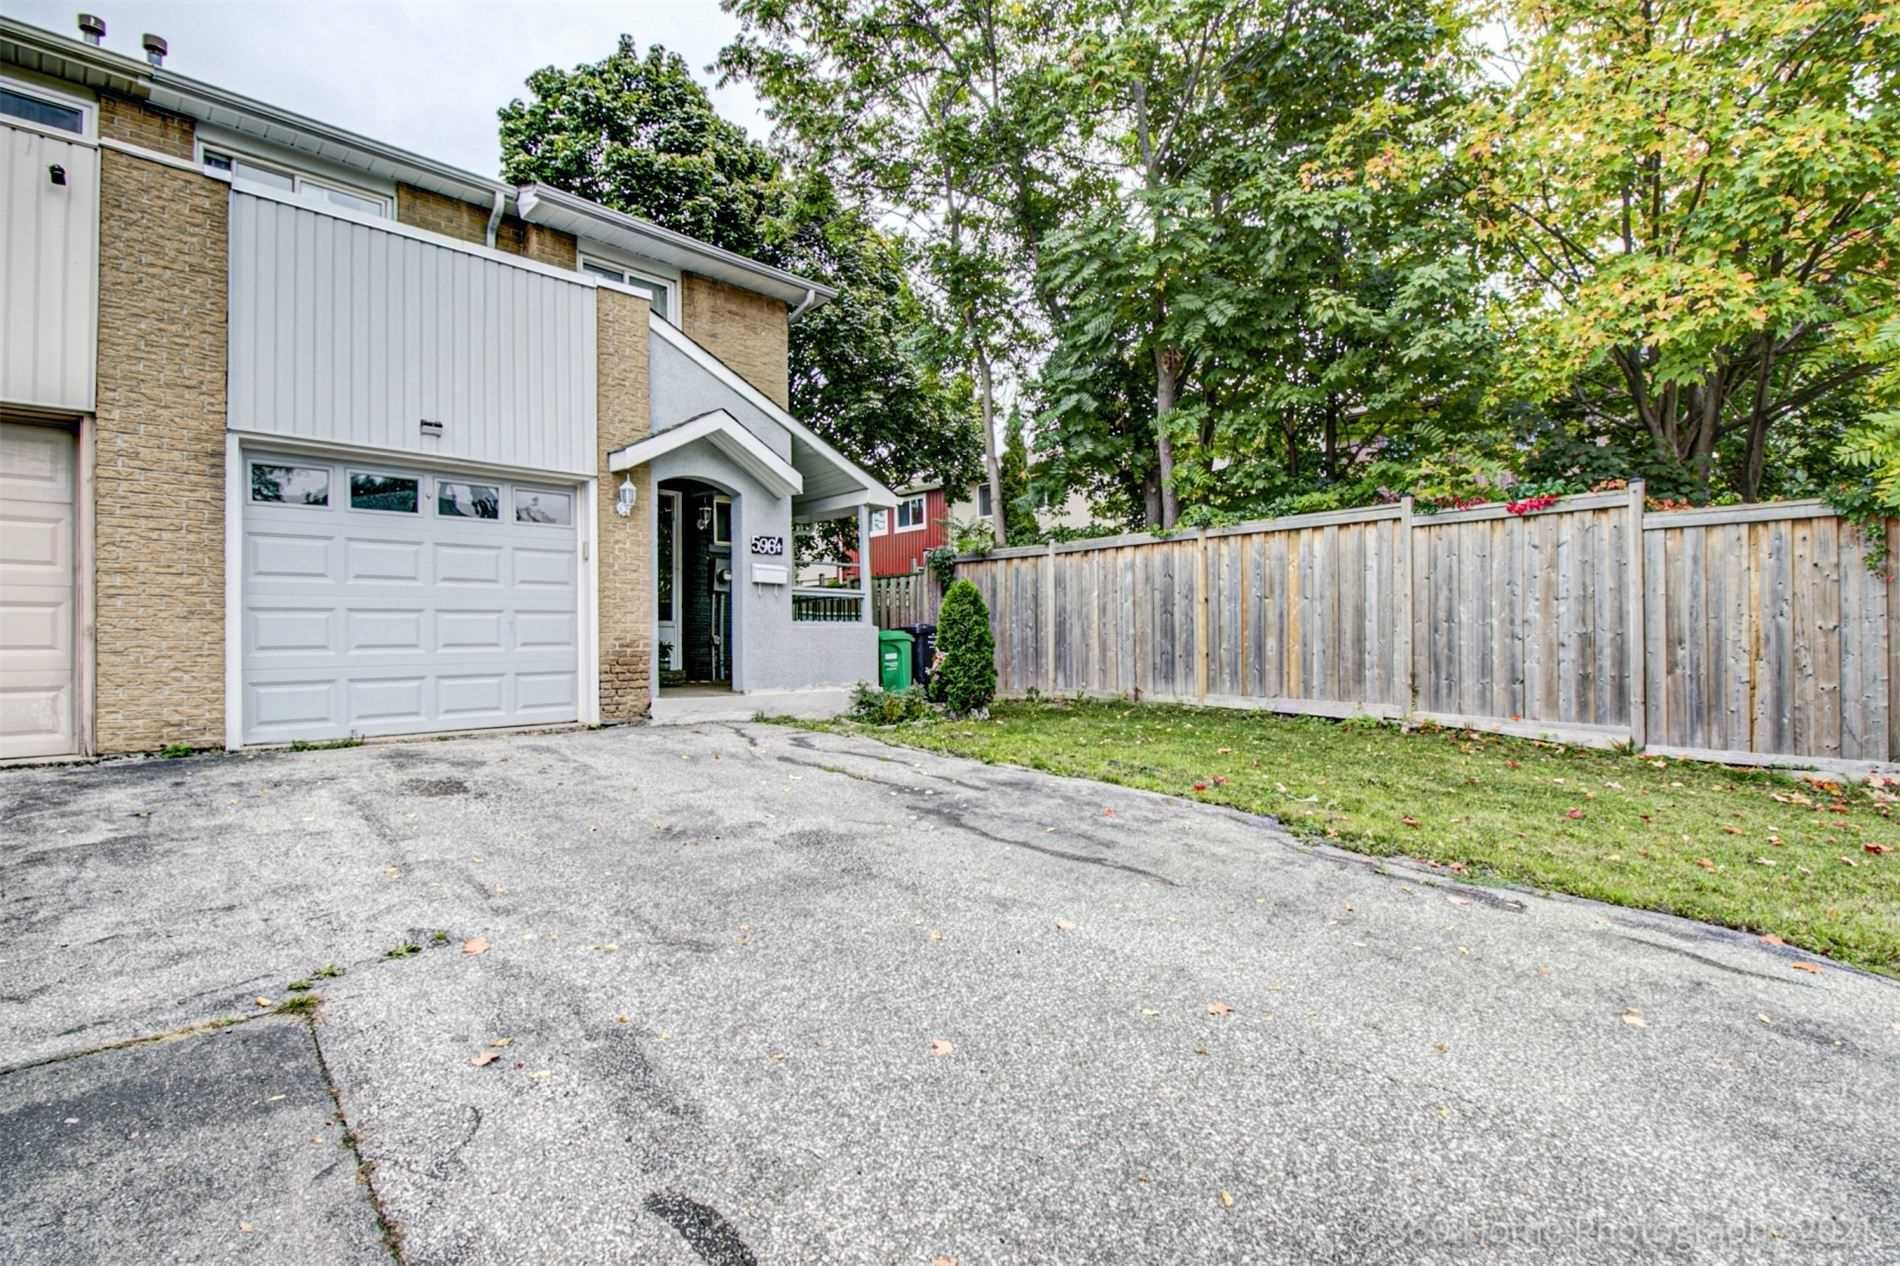 5964 Chidham Cres, Mississauga, ON L5N2R9 - MLS#: W5397469